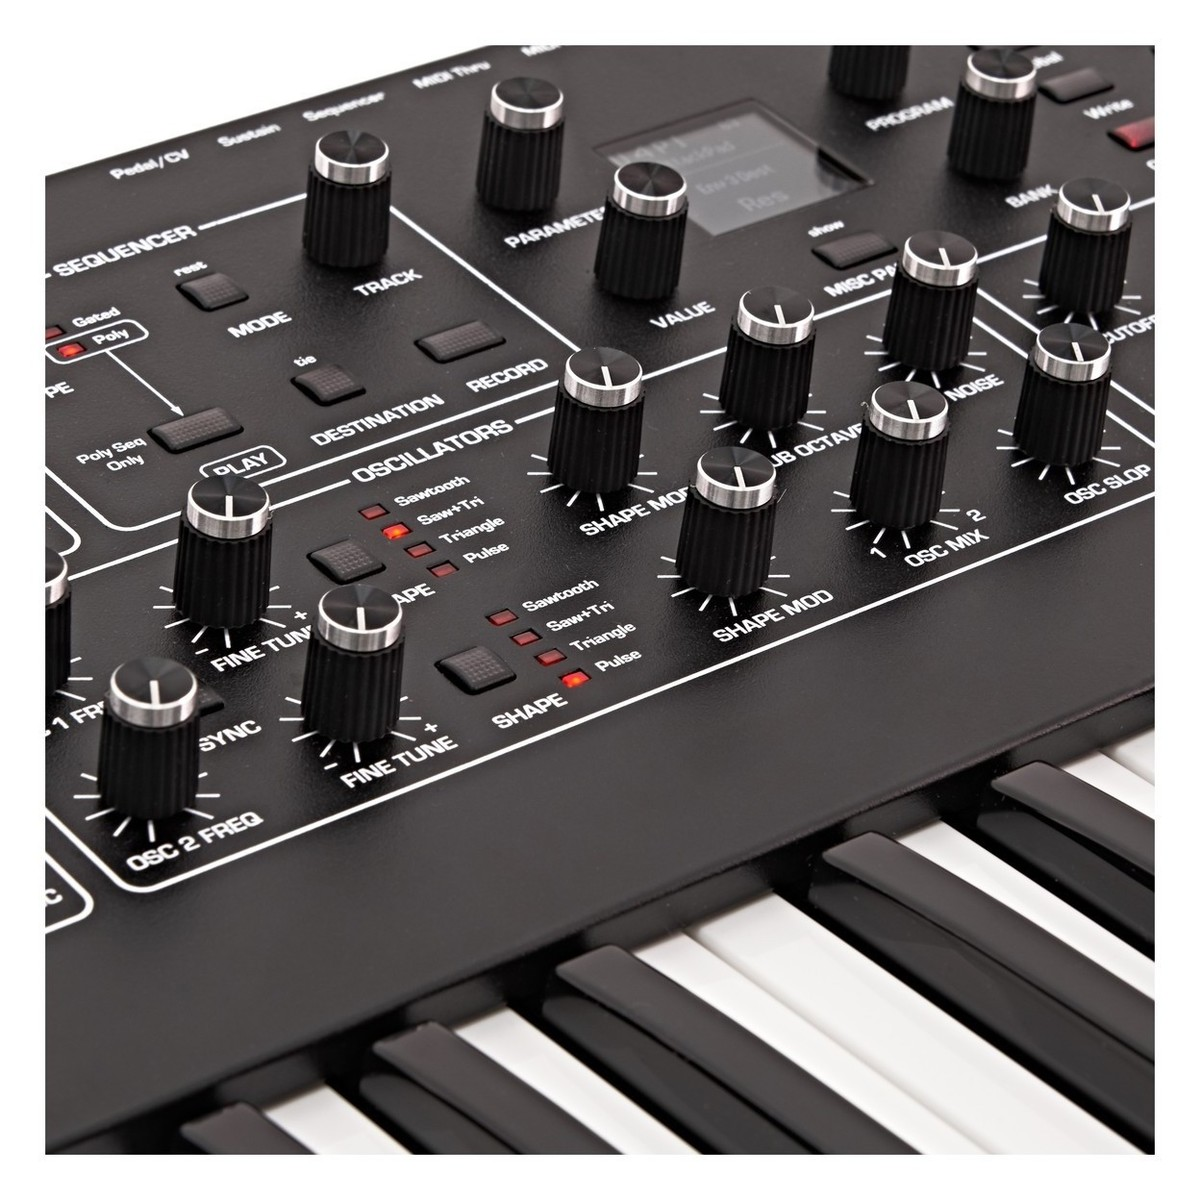 dave smith instruments prophet rev2 16 voice analog poly synth case at gear4music. Black Bedroom Furniture Sets. Home Design Ideas